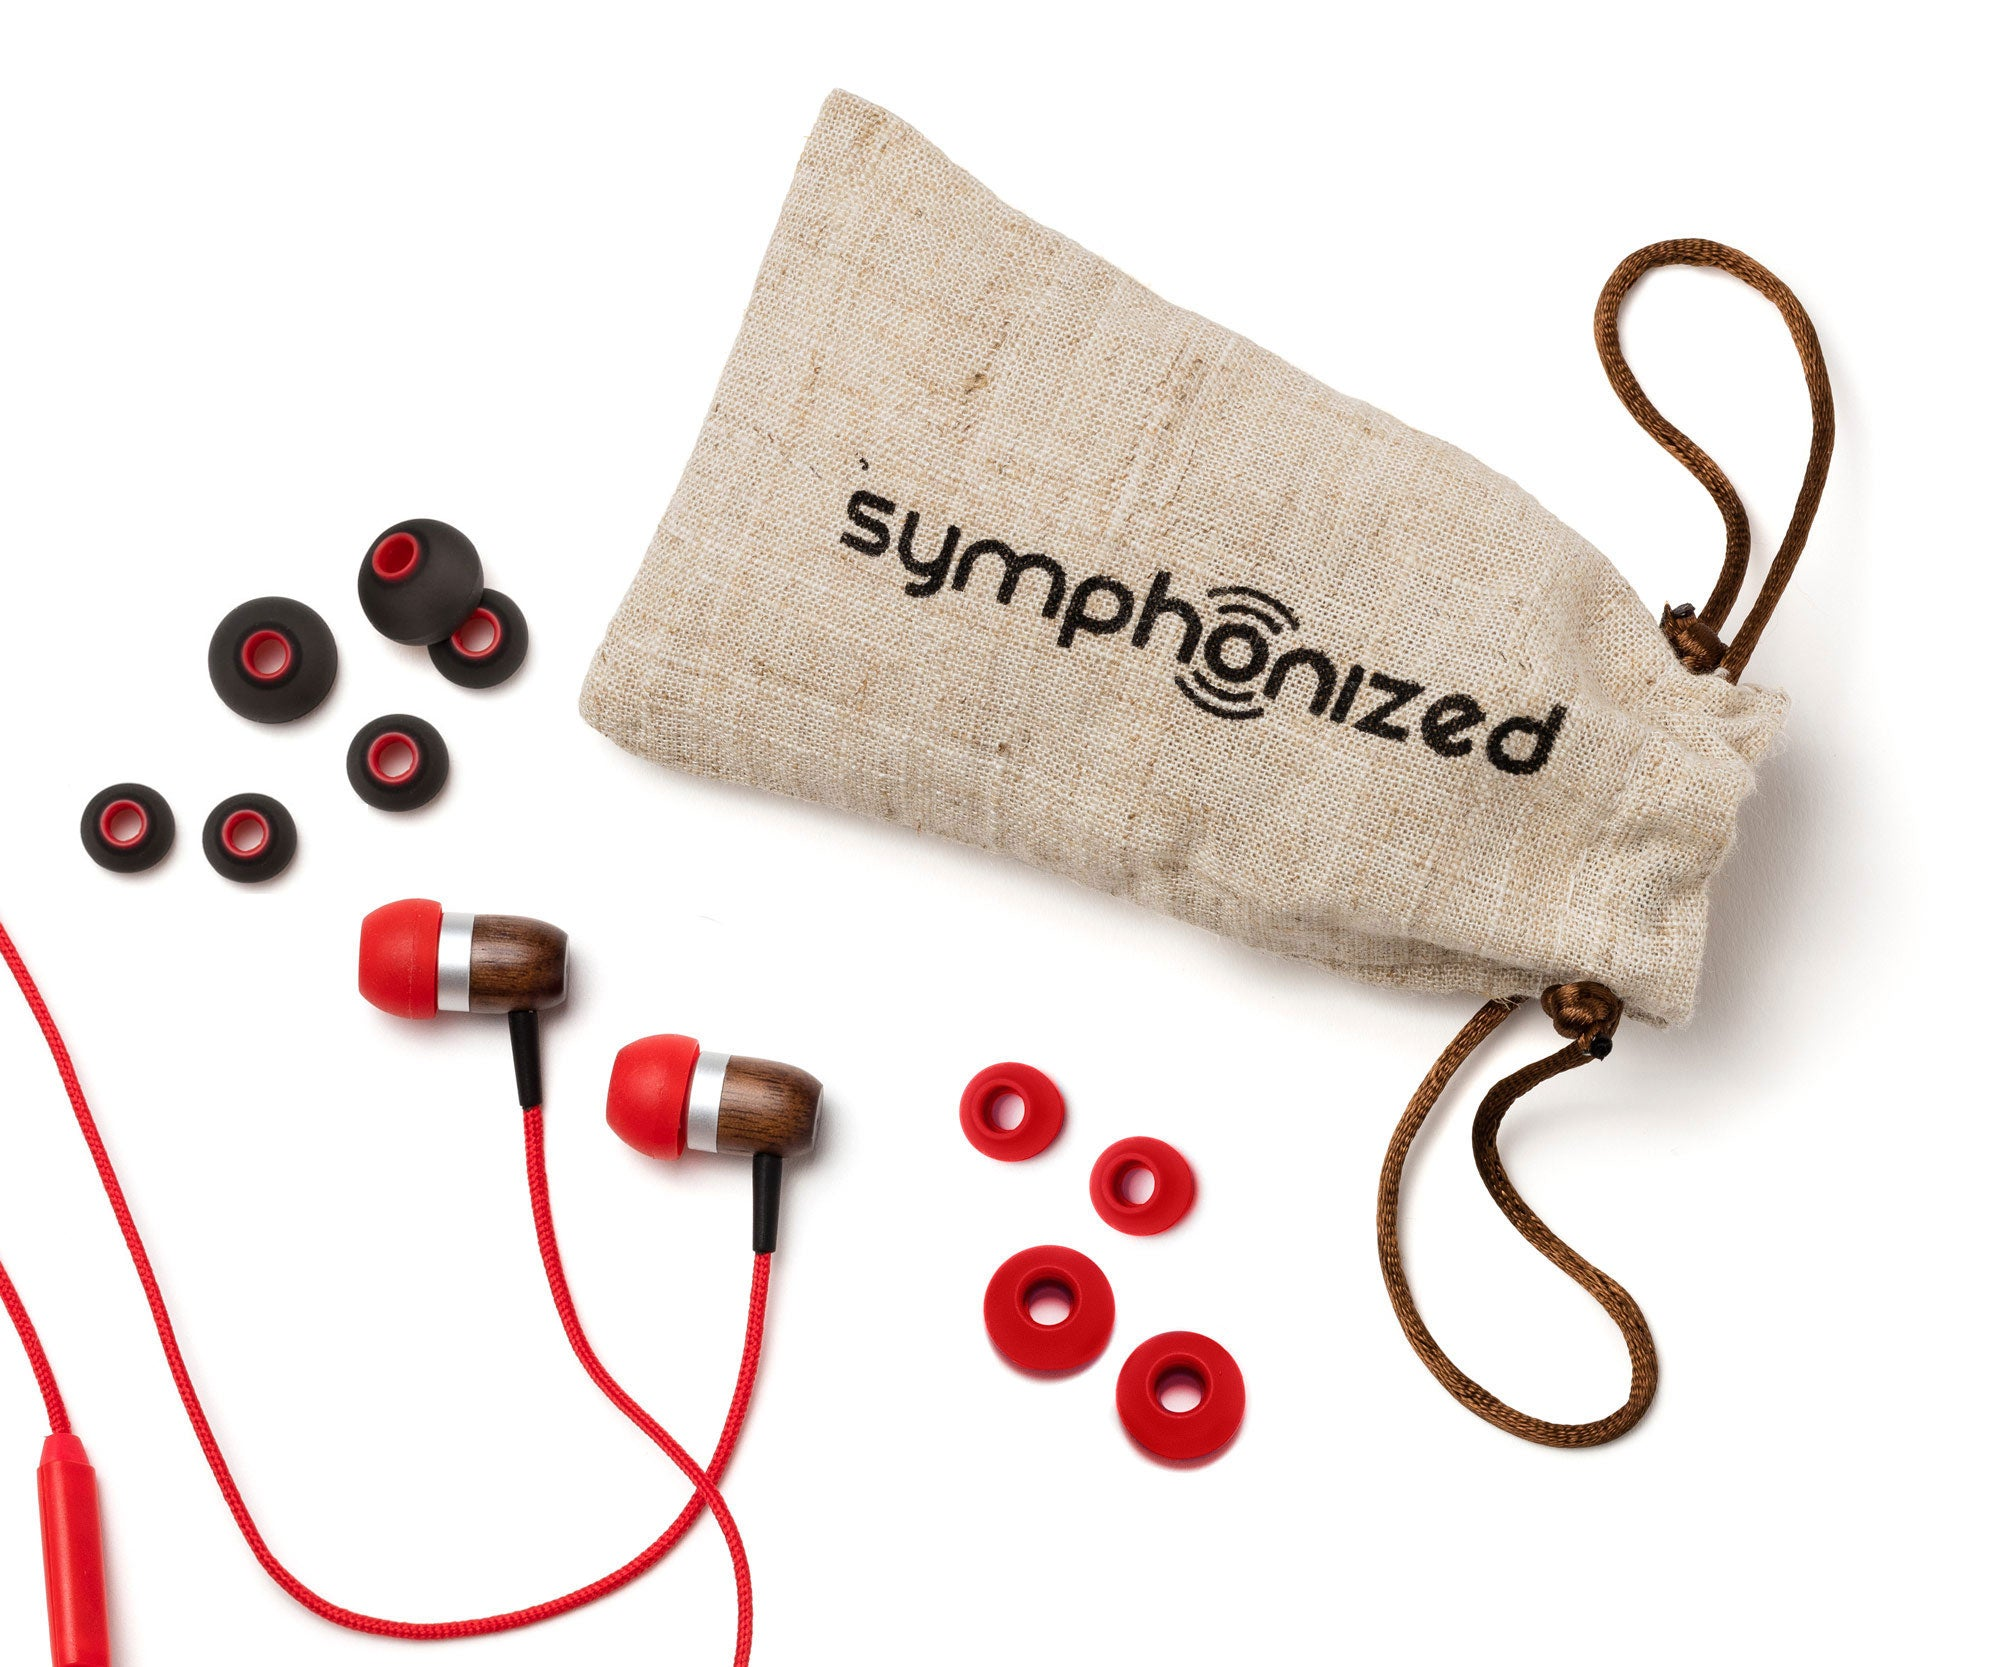 GLXY In-Ear Wood Headphones - Red